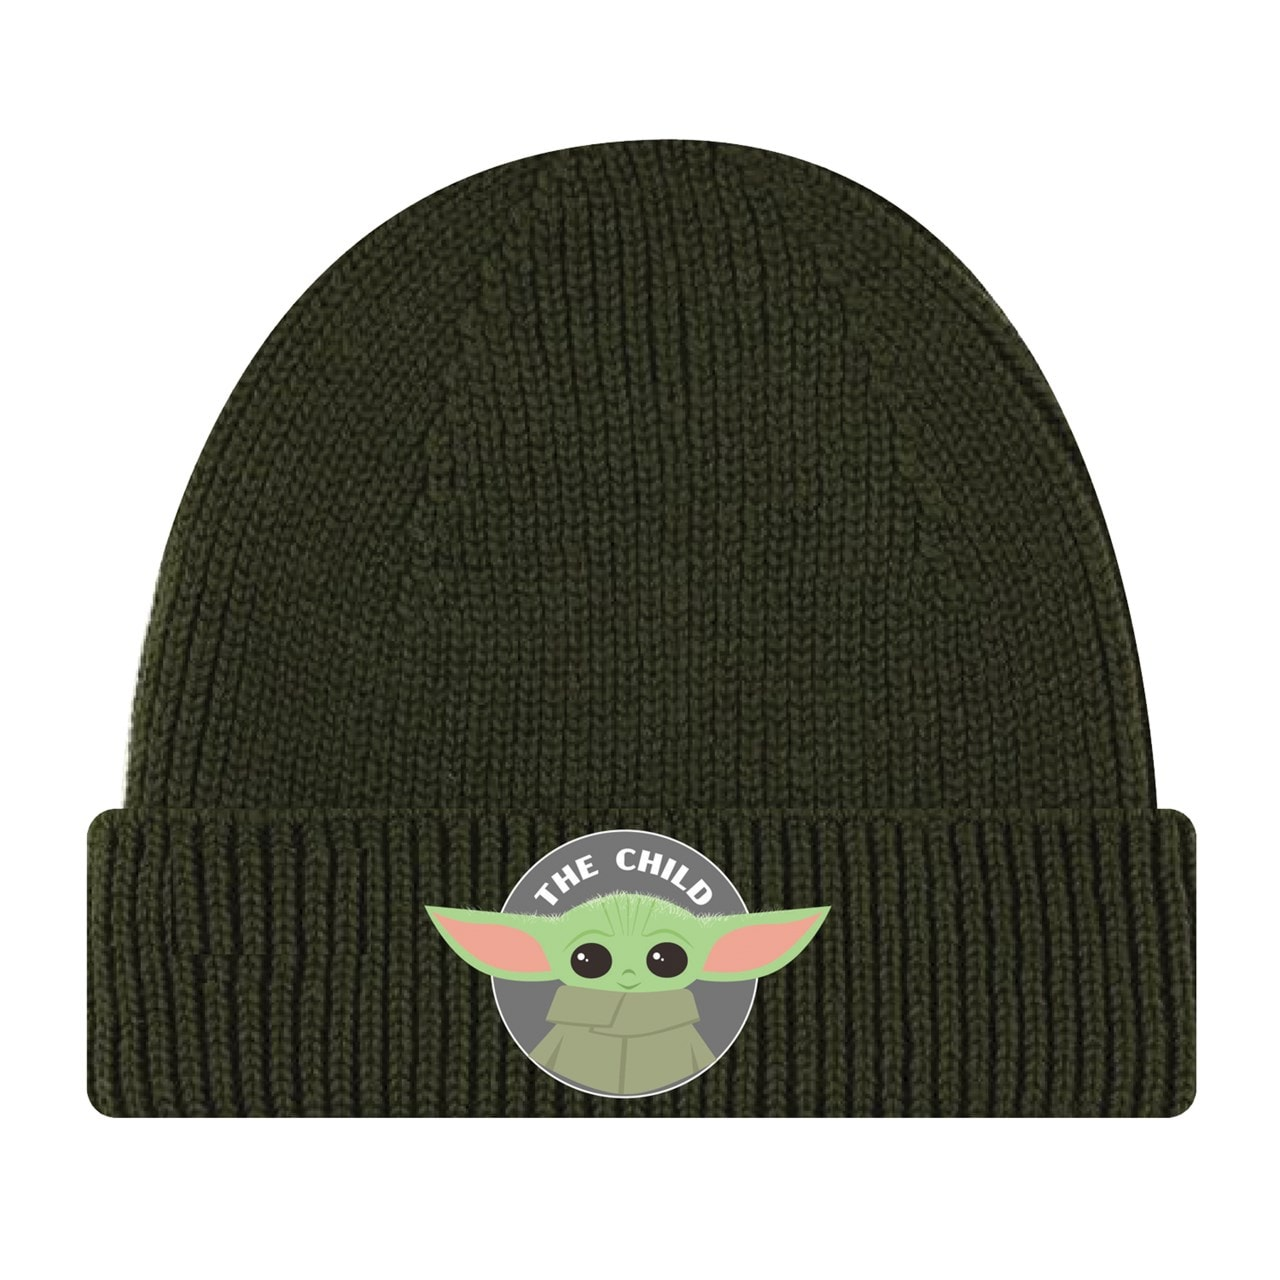 The Mandalorian: Child Badge Beanie - 1